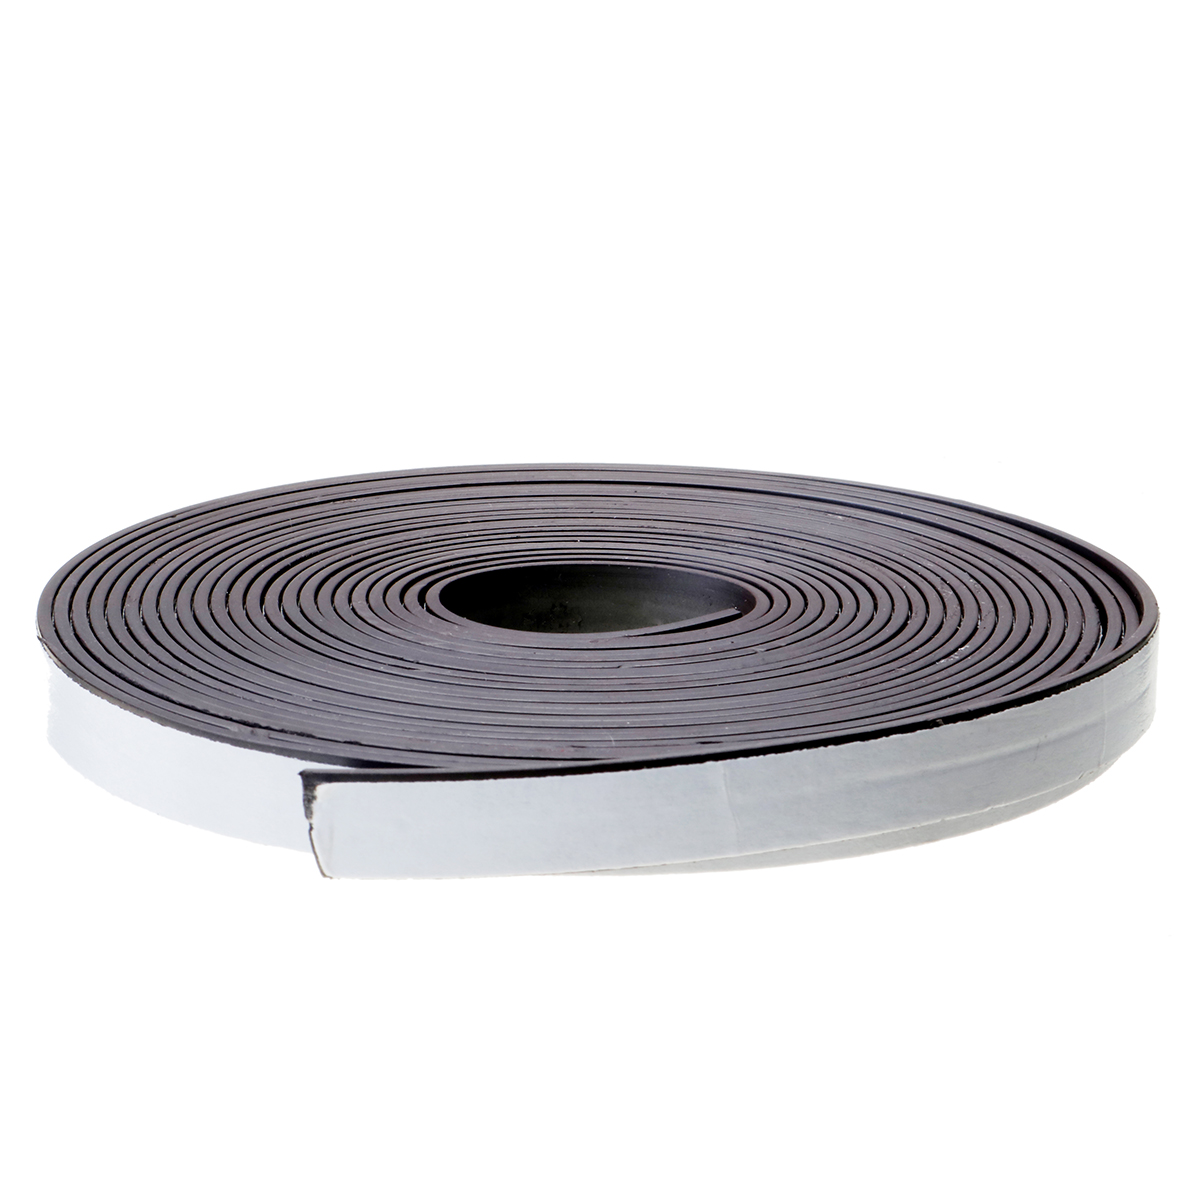 5M 16FT Self Adhesive Flexible Soft Rubber Magnetic Tape Neodymium Magnet DIY Craft Strip